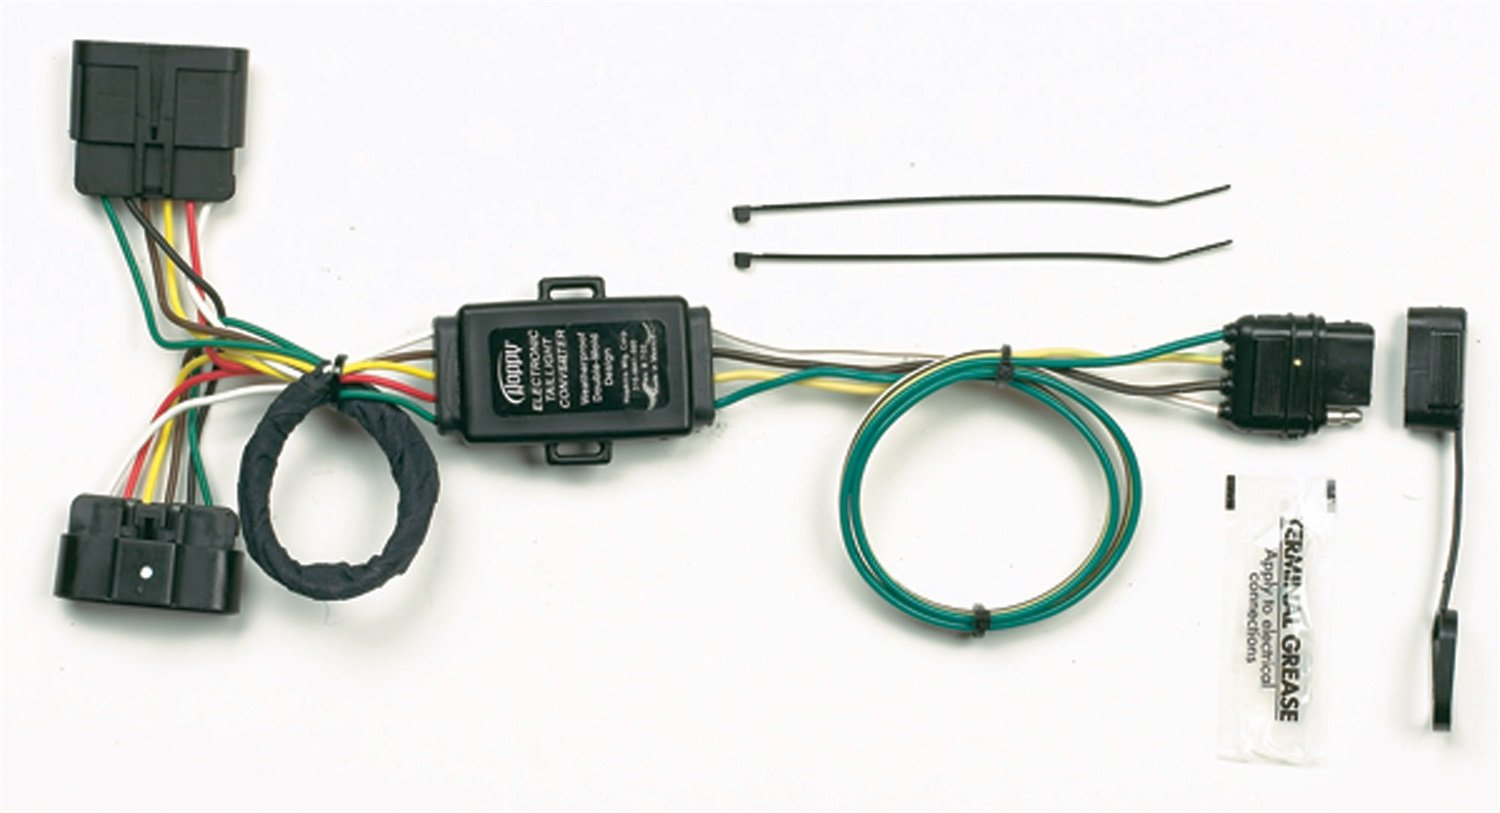 61exX8uloML._SL1500_ amazon com hopkins 41165 plug in simple vehicle wiring kit hopkins wire harness at cita.asia